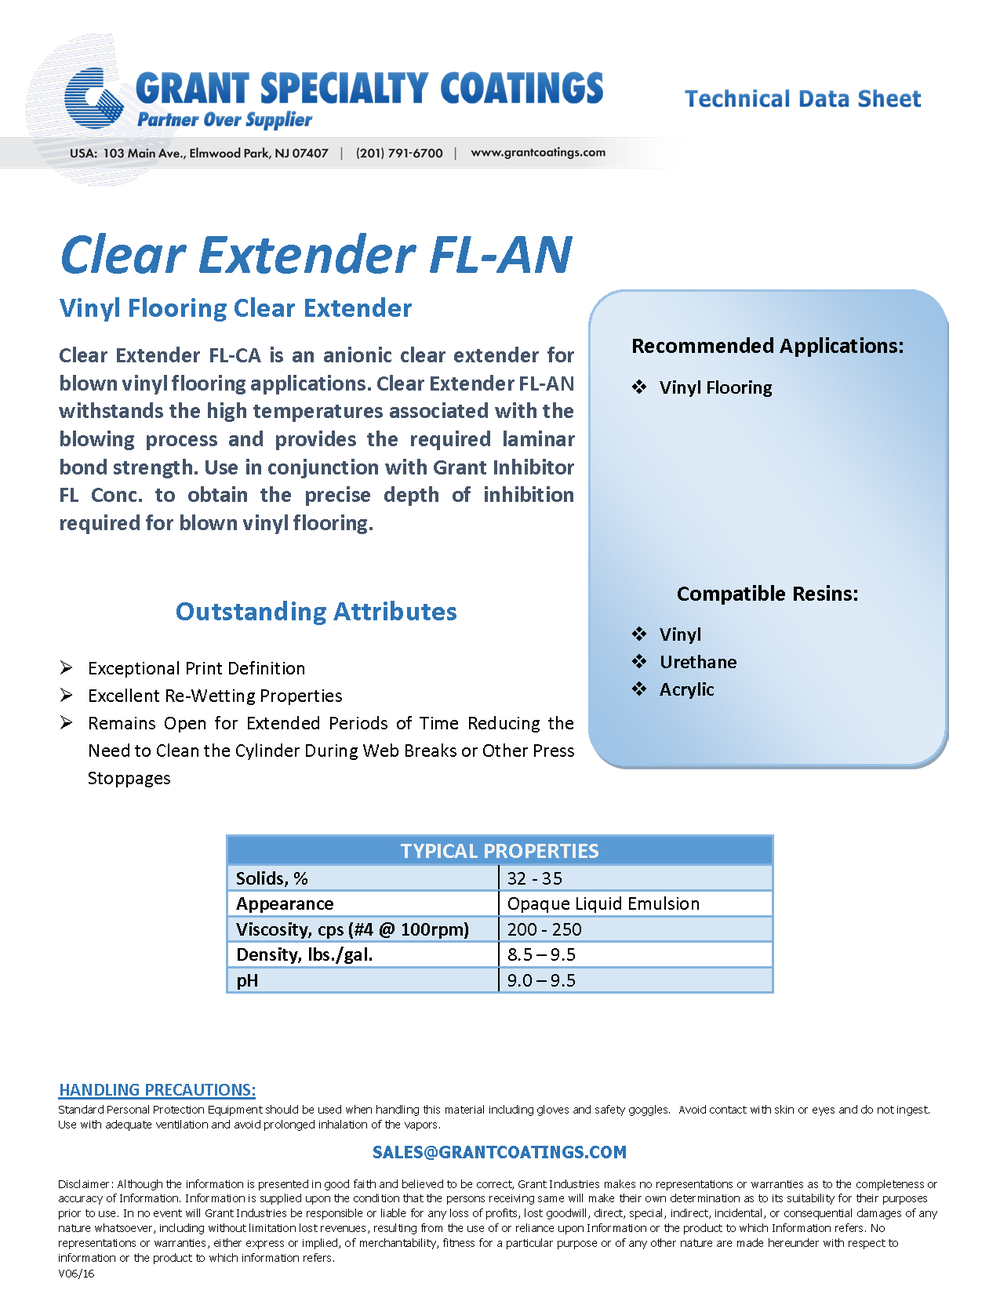 CLEAR Extender FL-AN  for Blown Vinyl Flooring.png